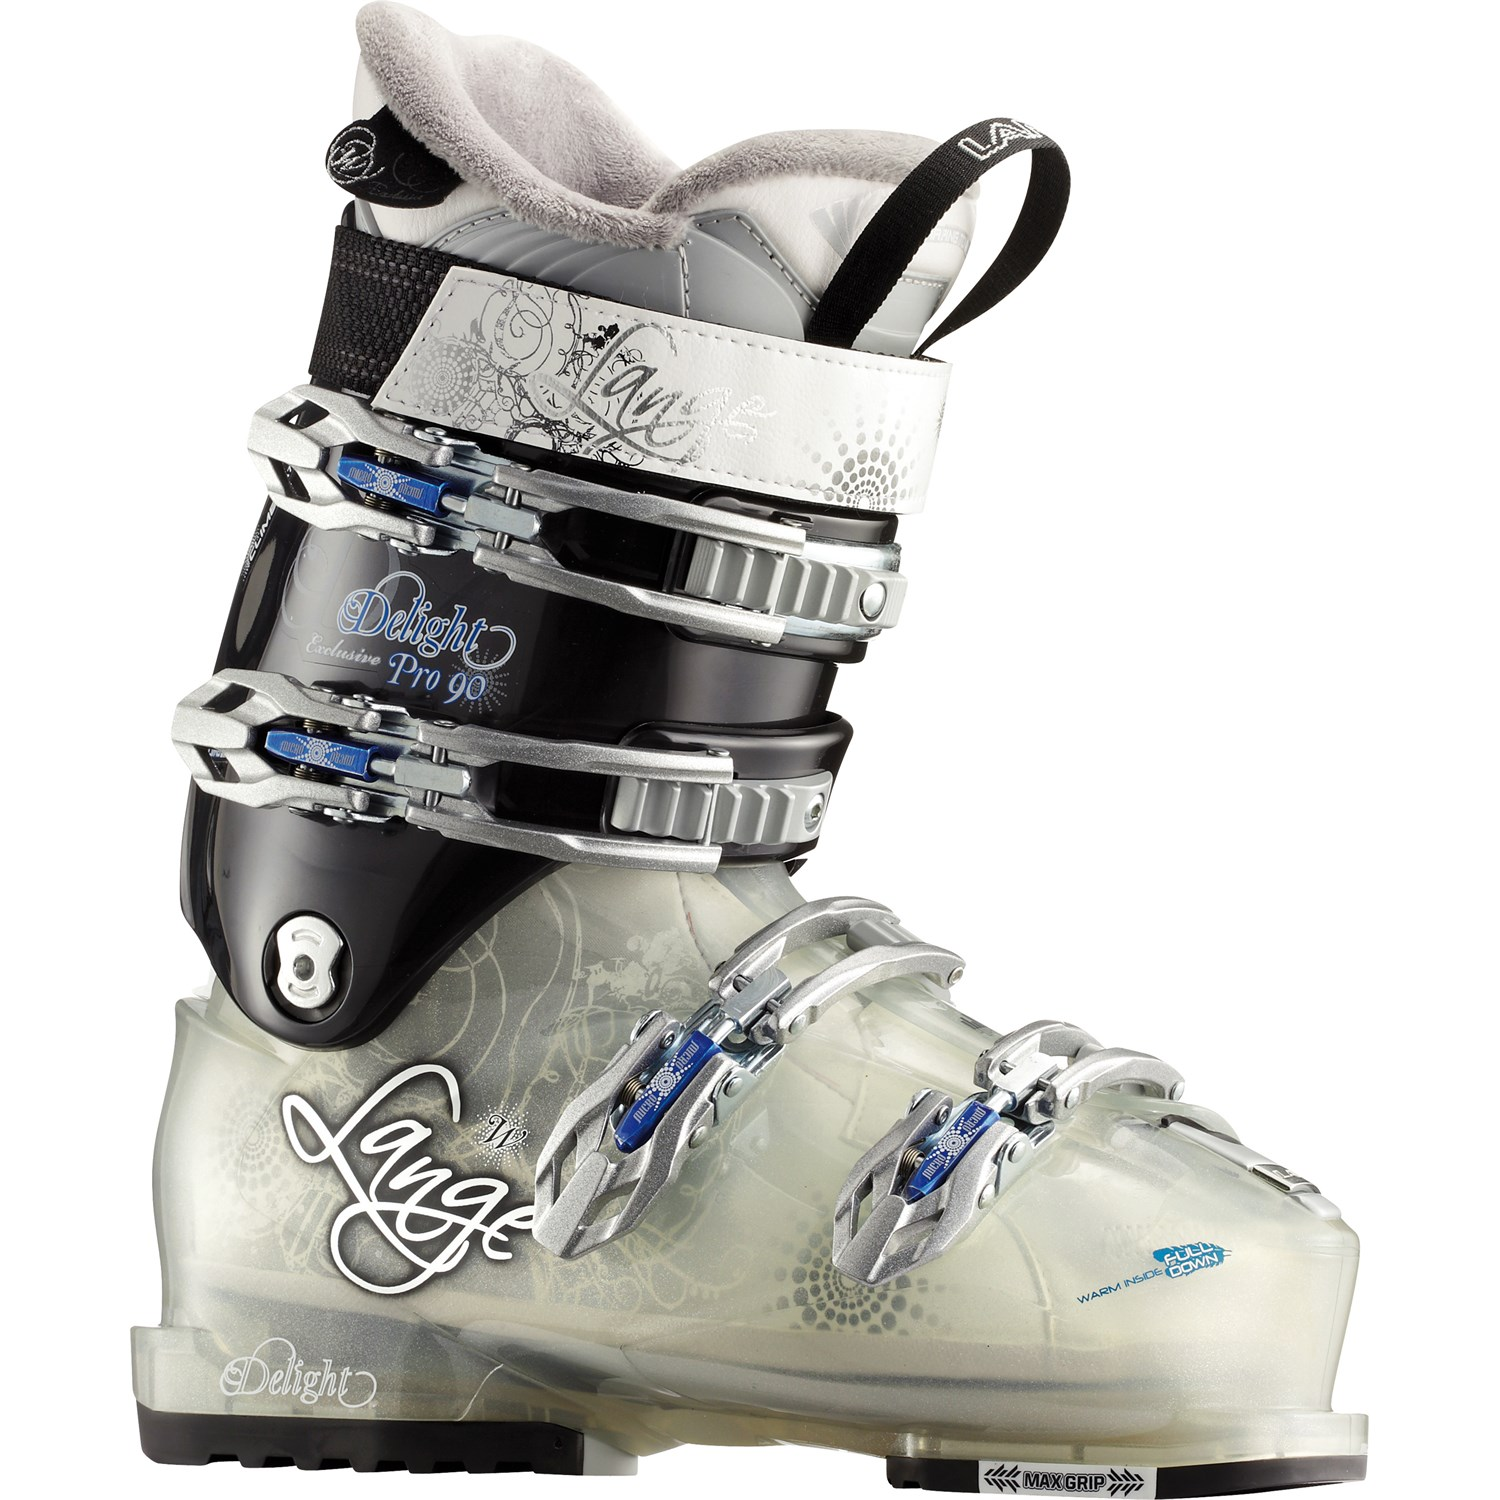 Lange Exclusive Delight Pro Ski Boots - Women's 2012 | evo ...